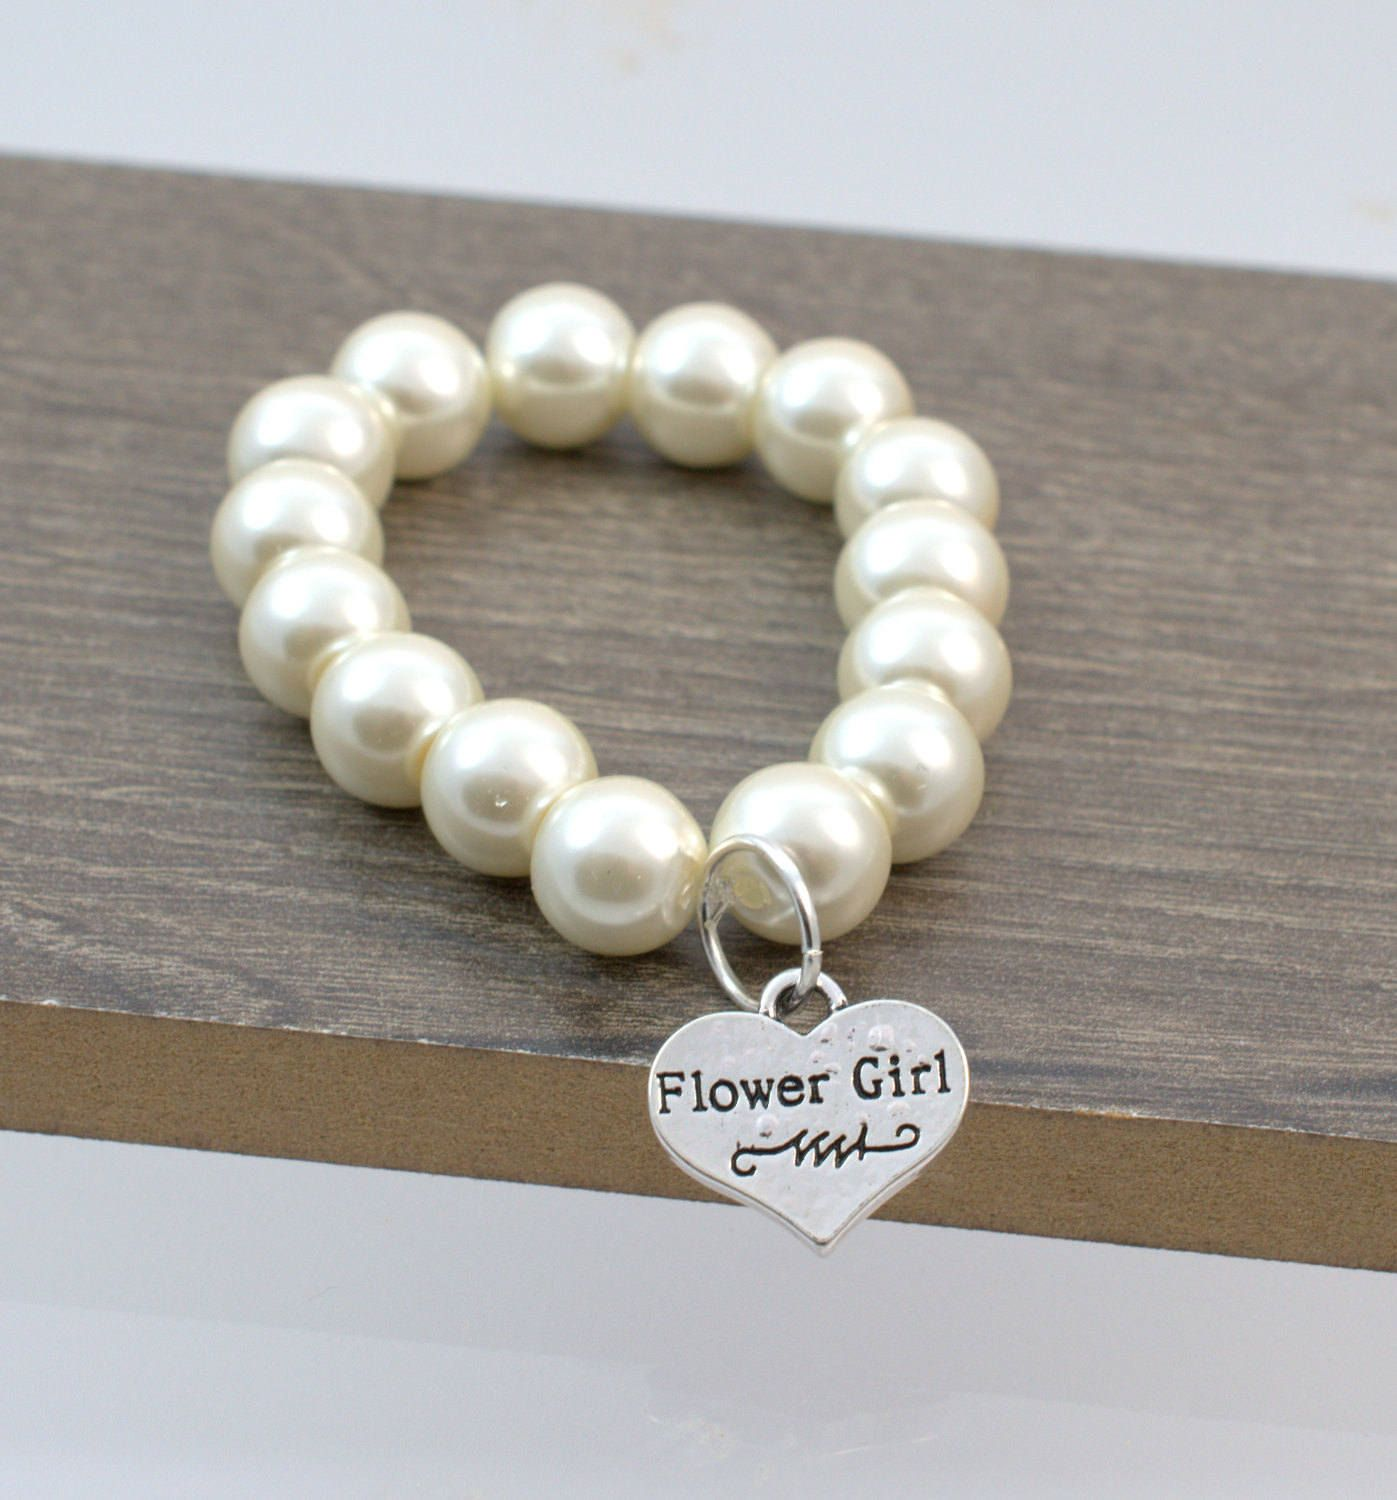 Flower Girl Bracelet Wedding Jewelry Flower Girl Gift Childrens